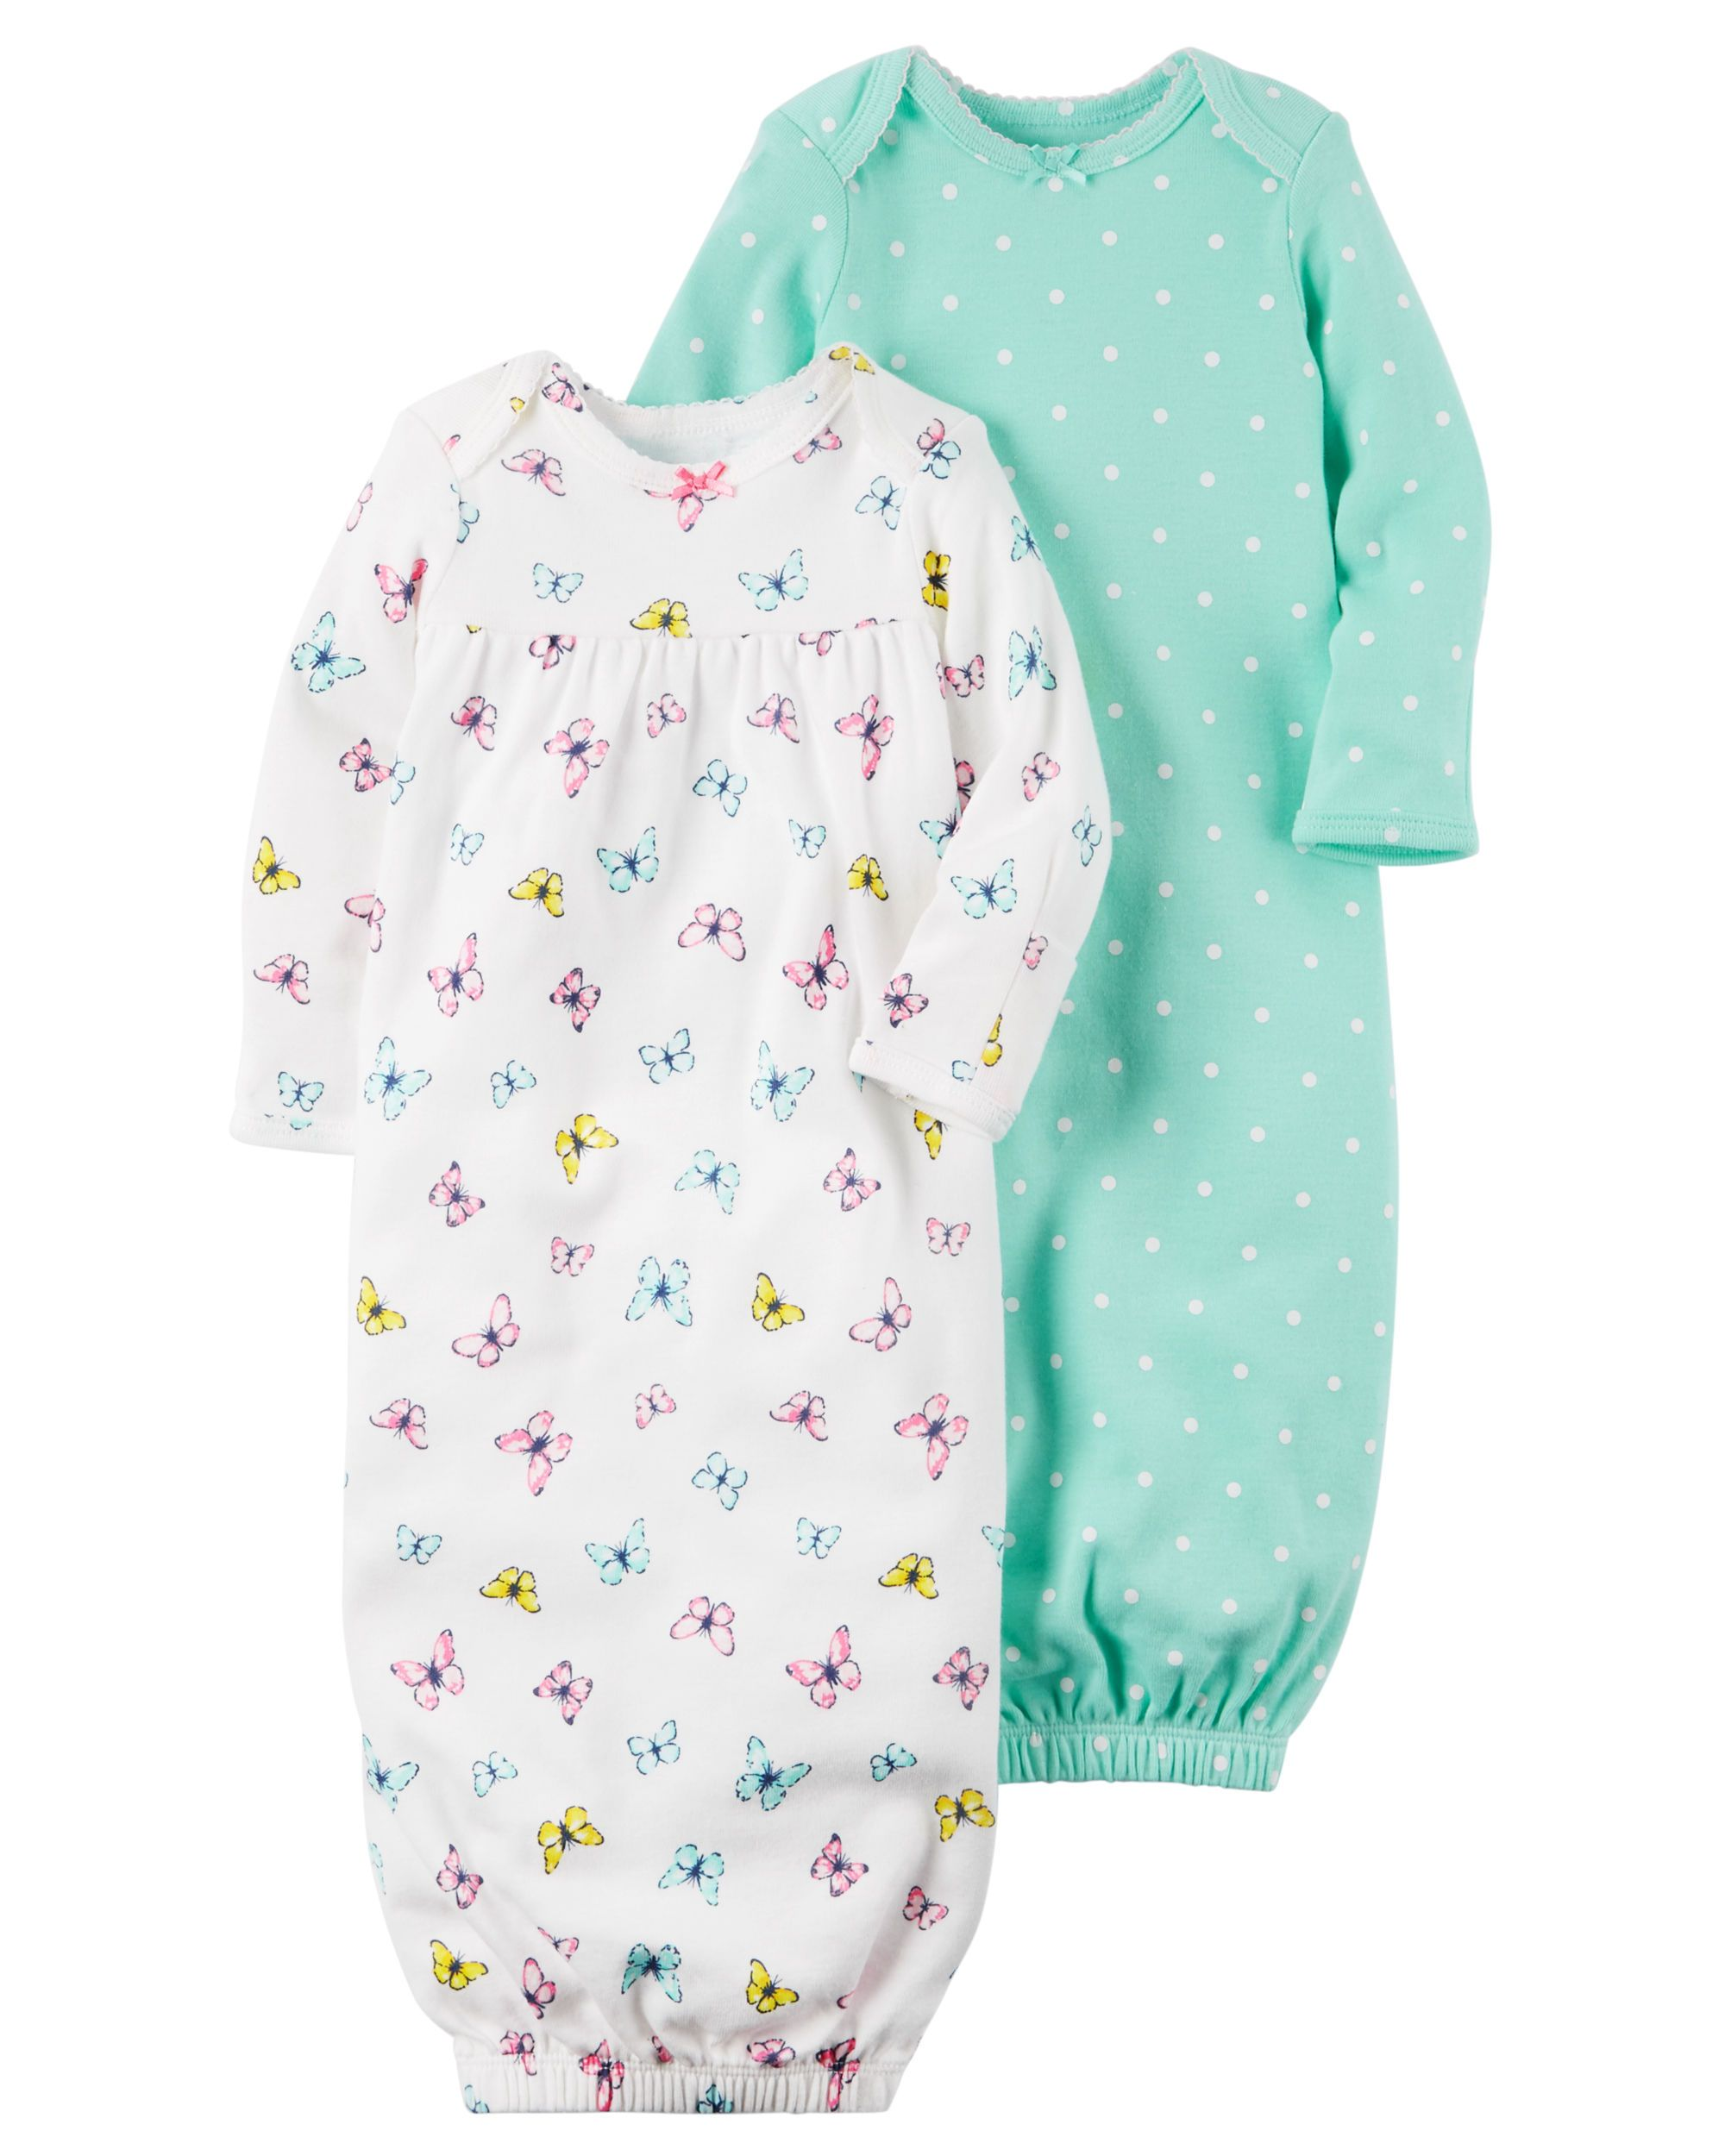 2-Pack Babysoft Sleeper Gowns | Babies clothes, Babies and Future baby